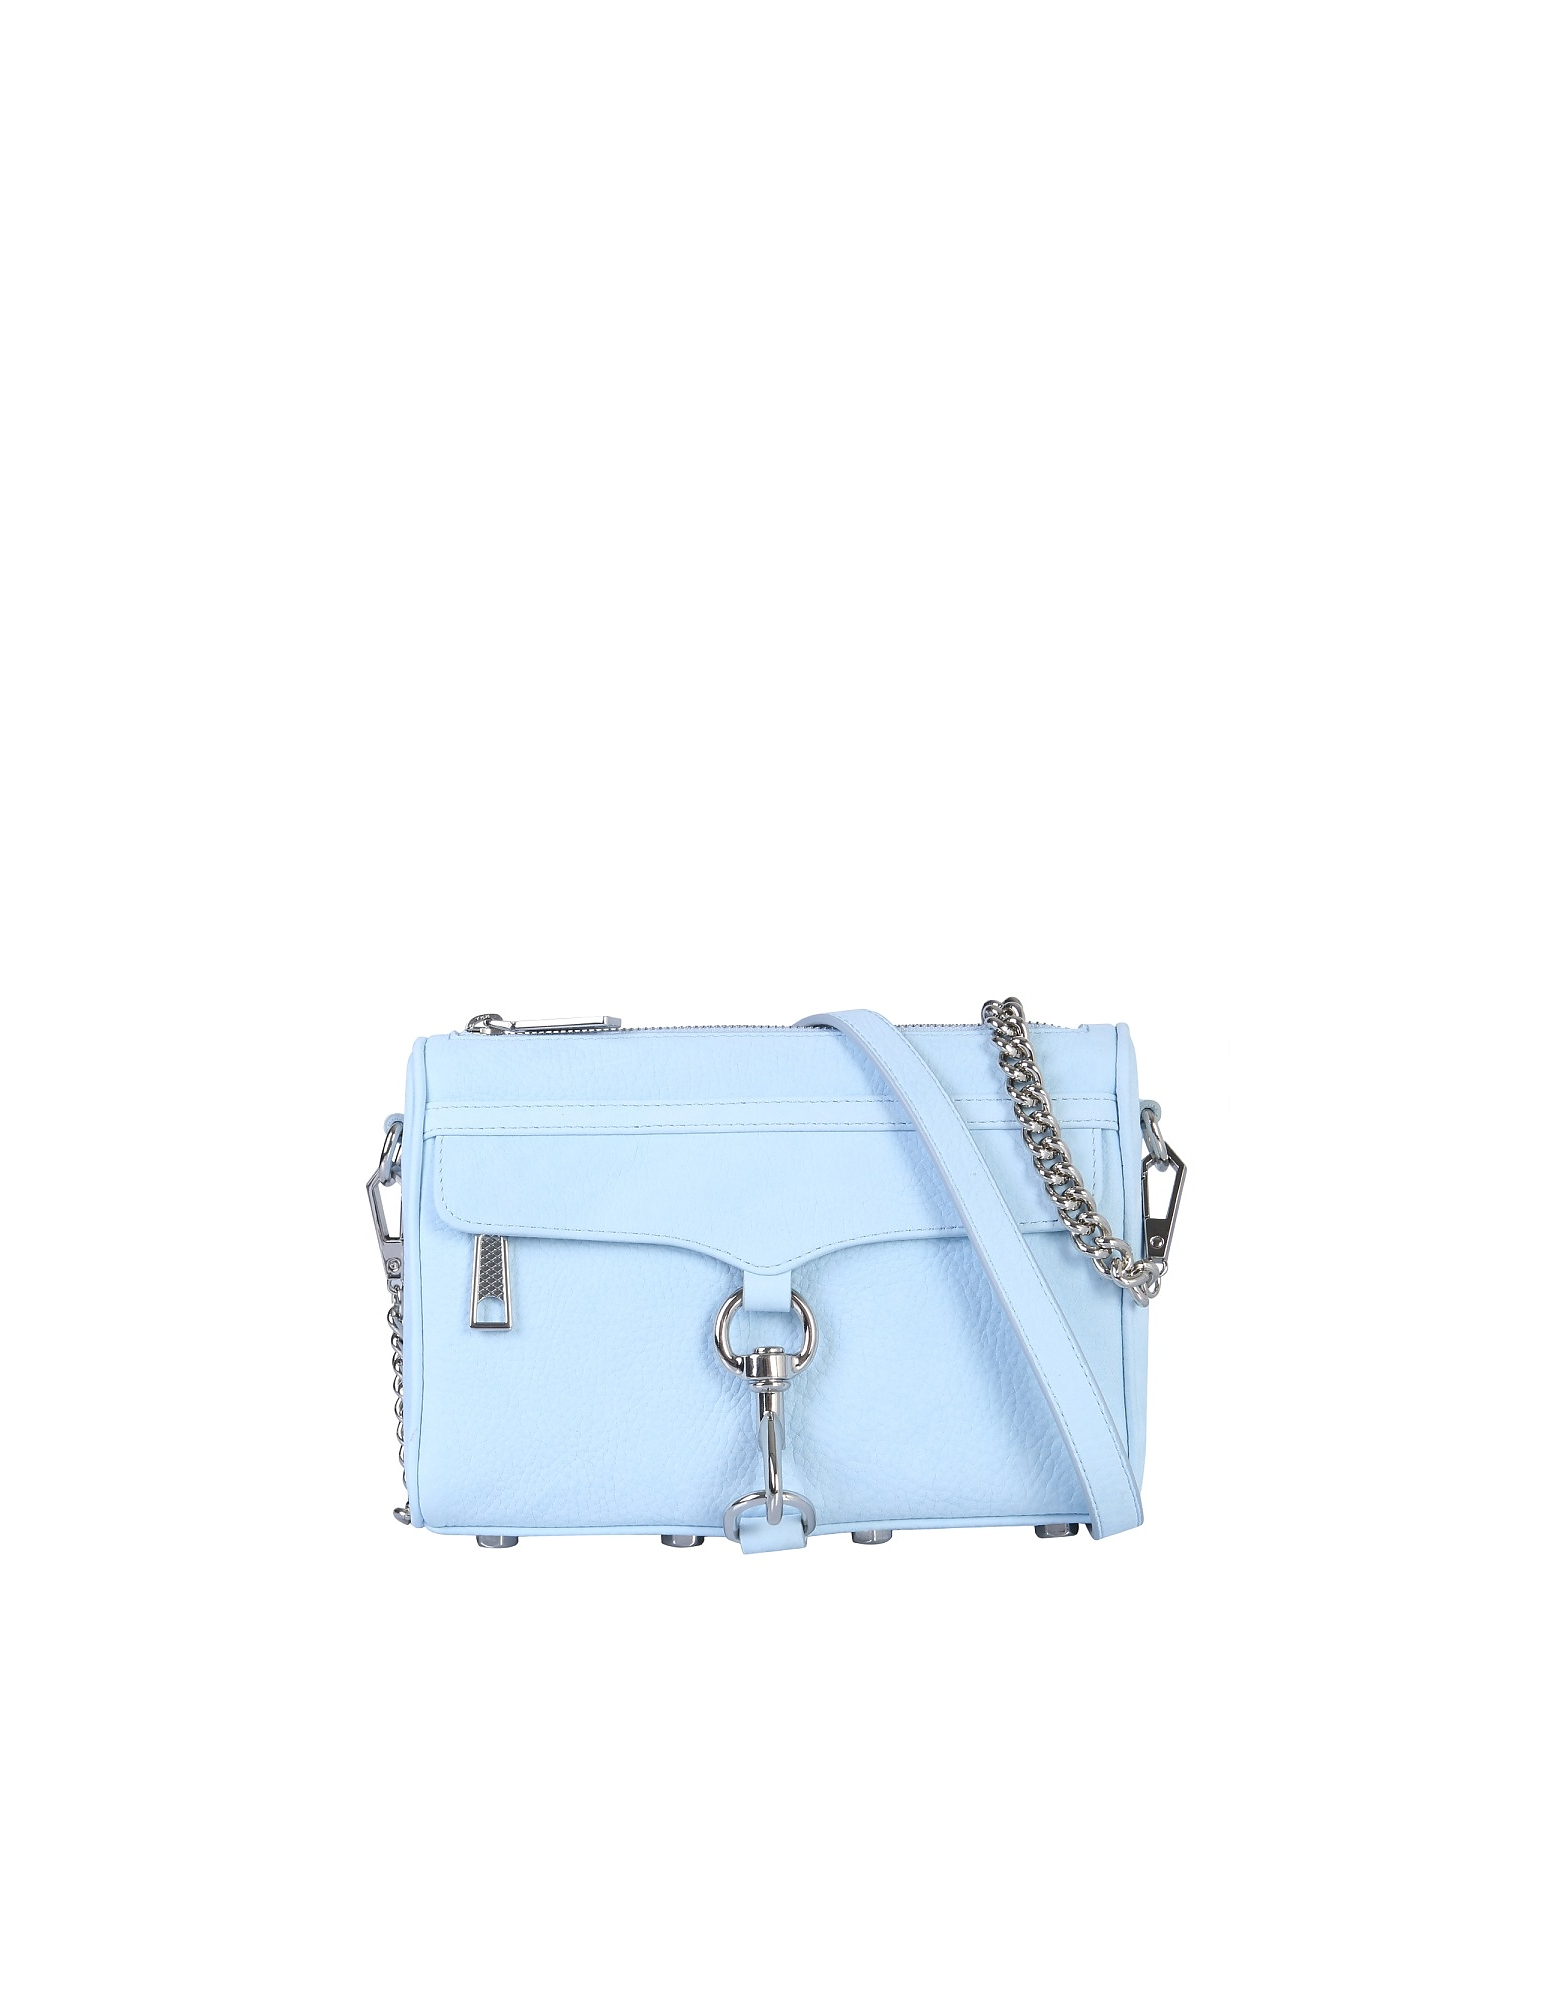 Rebecca Minkoff Designer Handbags, Mac Mini Bag